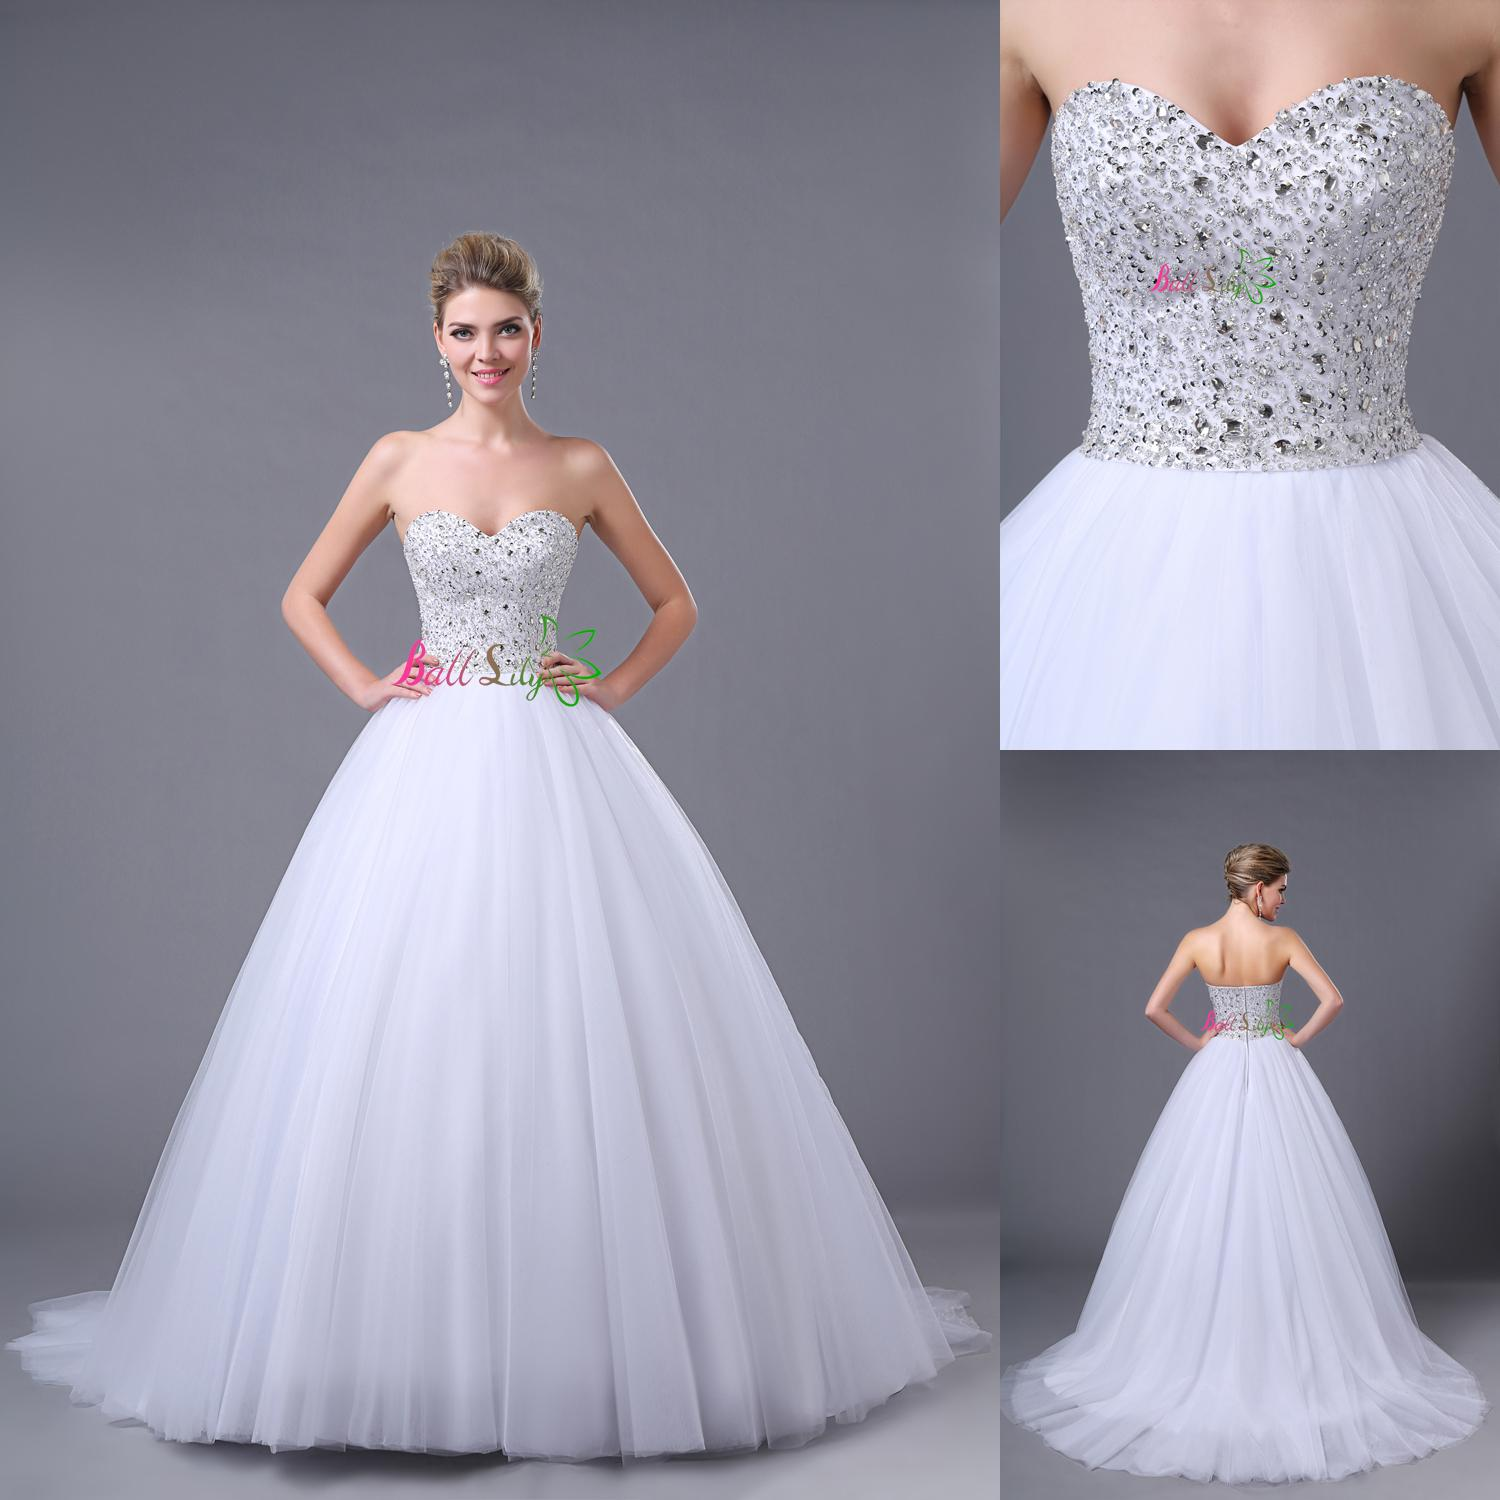 2014 Modern Ball Gown Wedding Dresses With Petticoat Sweetheart Beads Crystal Tulle Zipper Court